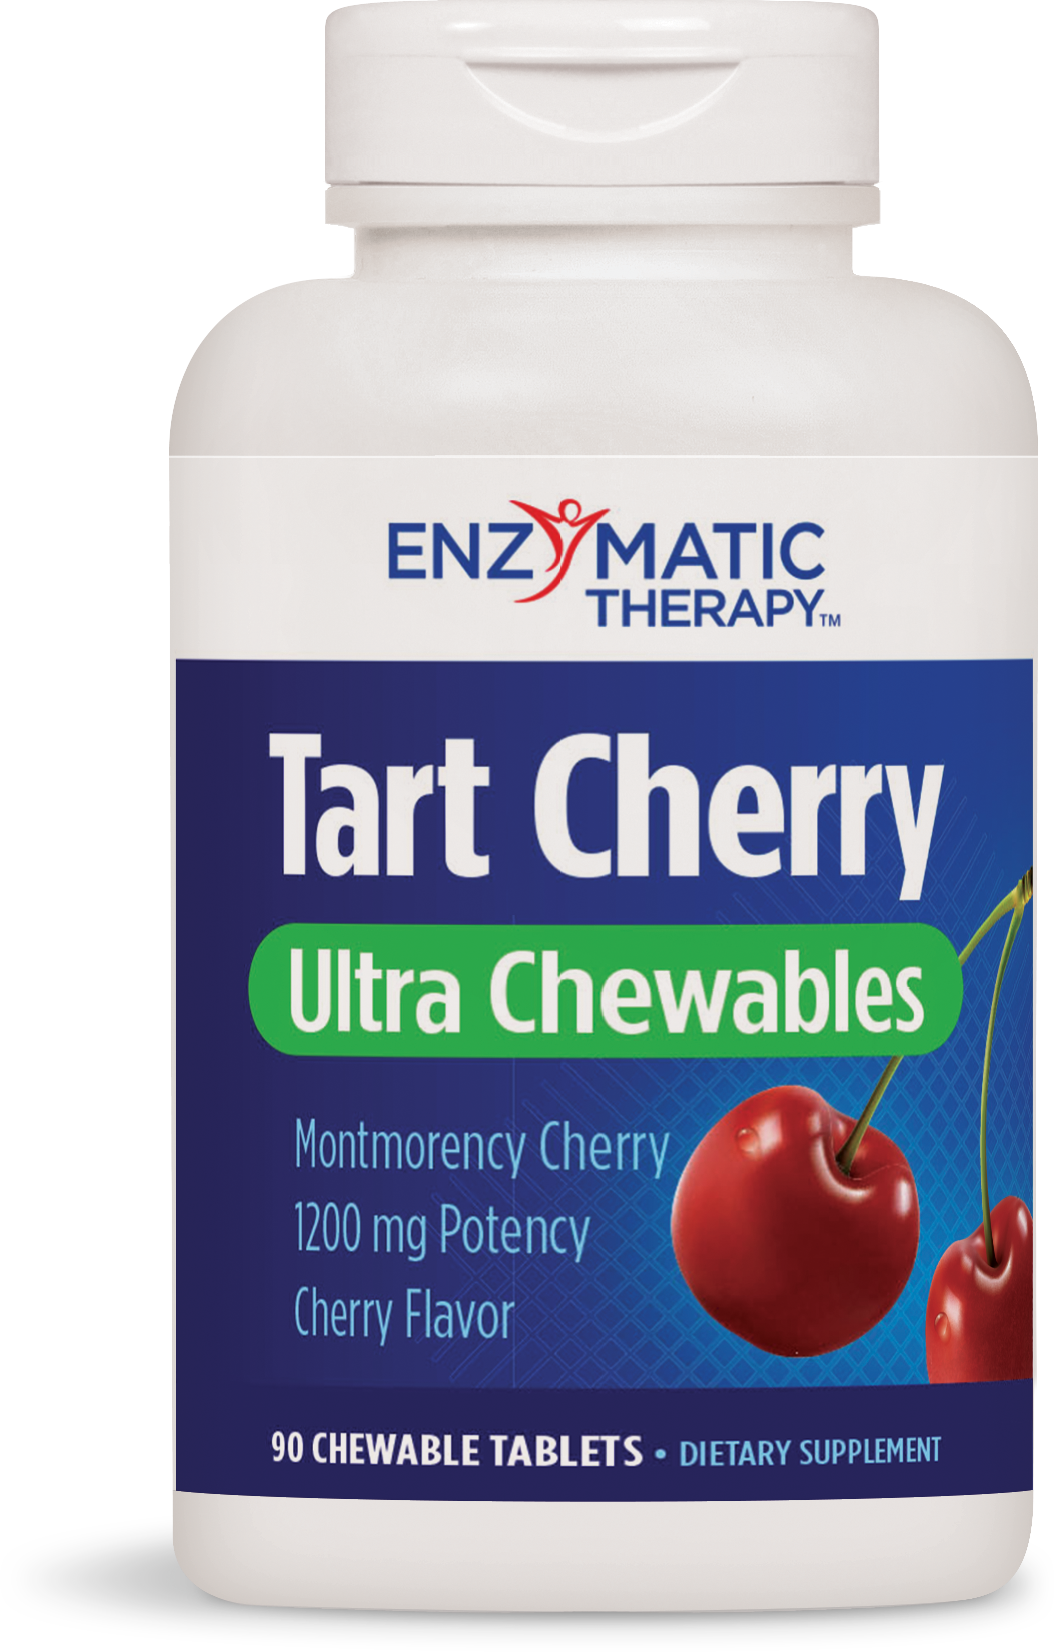 A bottle of Nature's Way Tart Cherry Ultra Chewables